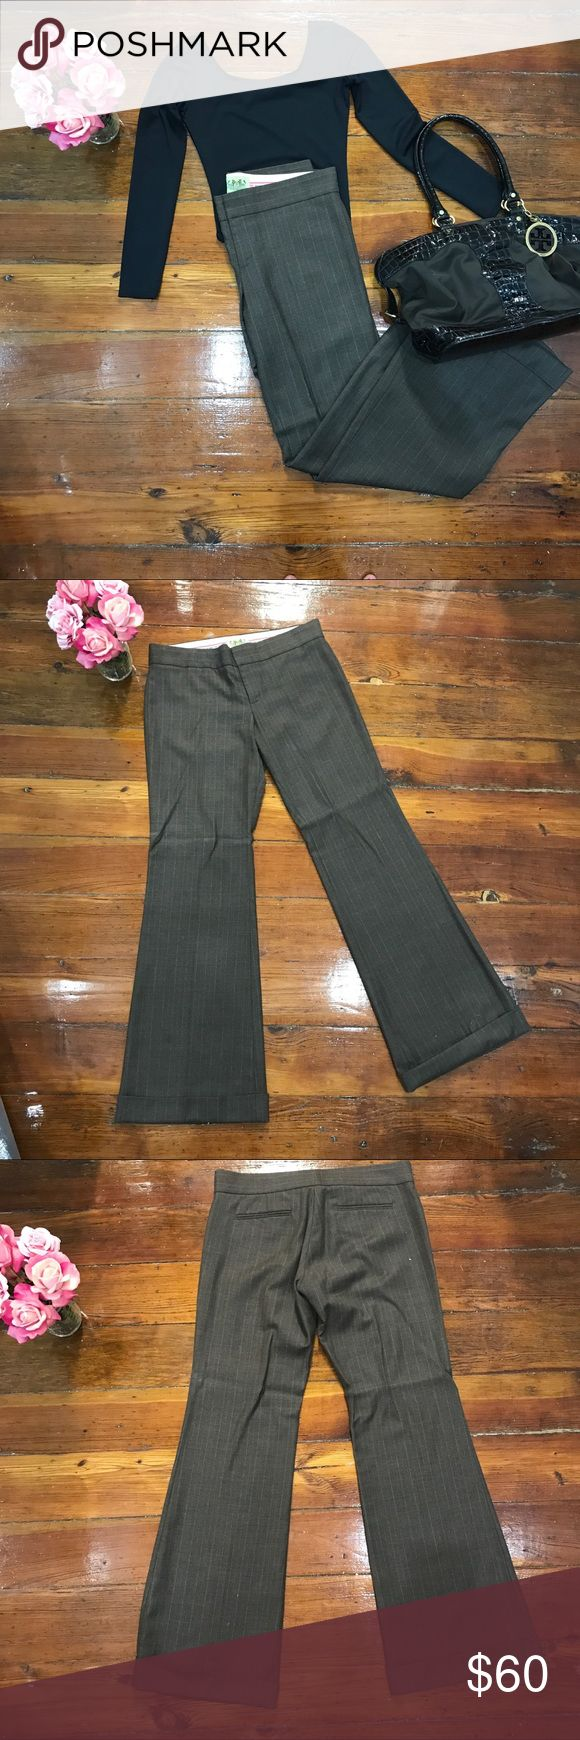 🌷Juicy Couture Slacks🌷 These are more brown than the picture shows. They also have a slight pinstripe to them. Fits great. I'm 5'11 and they hit the floor when I wear them. Pant rides on the hip. Juicy Couture Pants Trousers